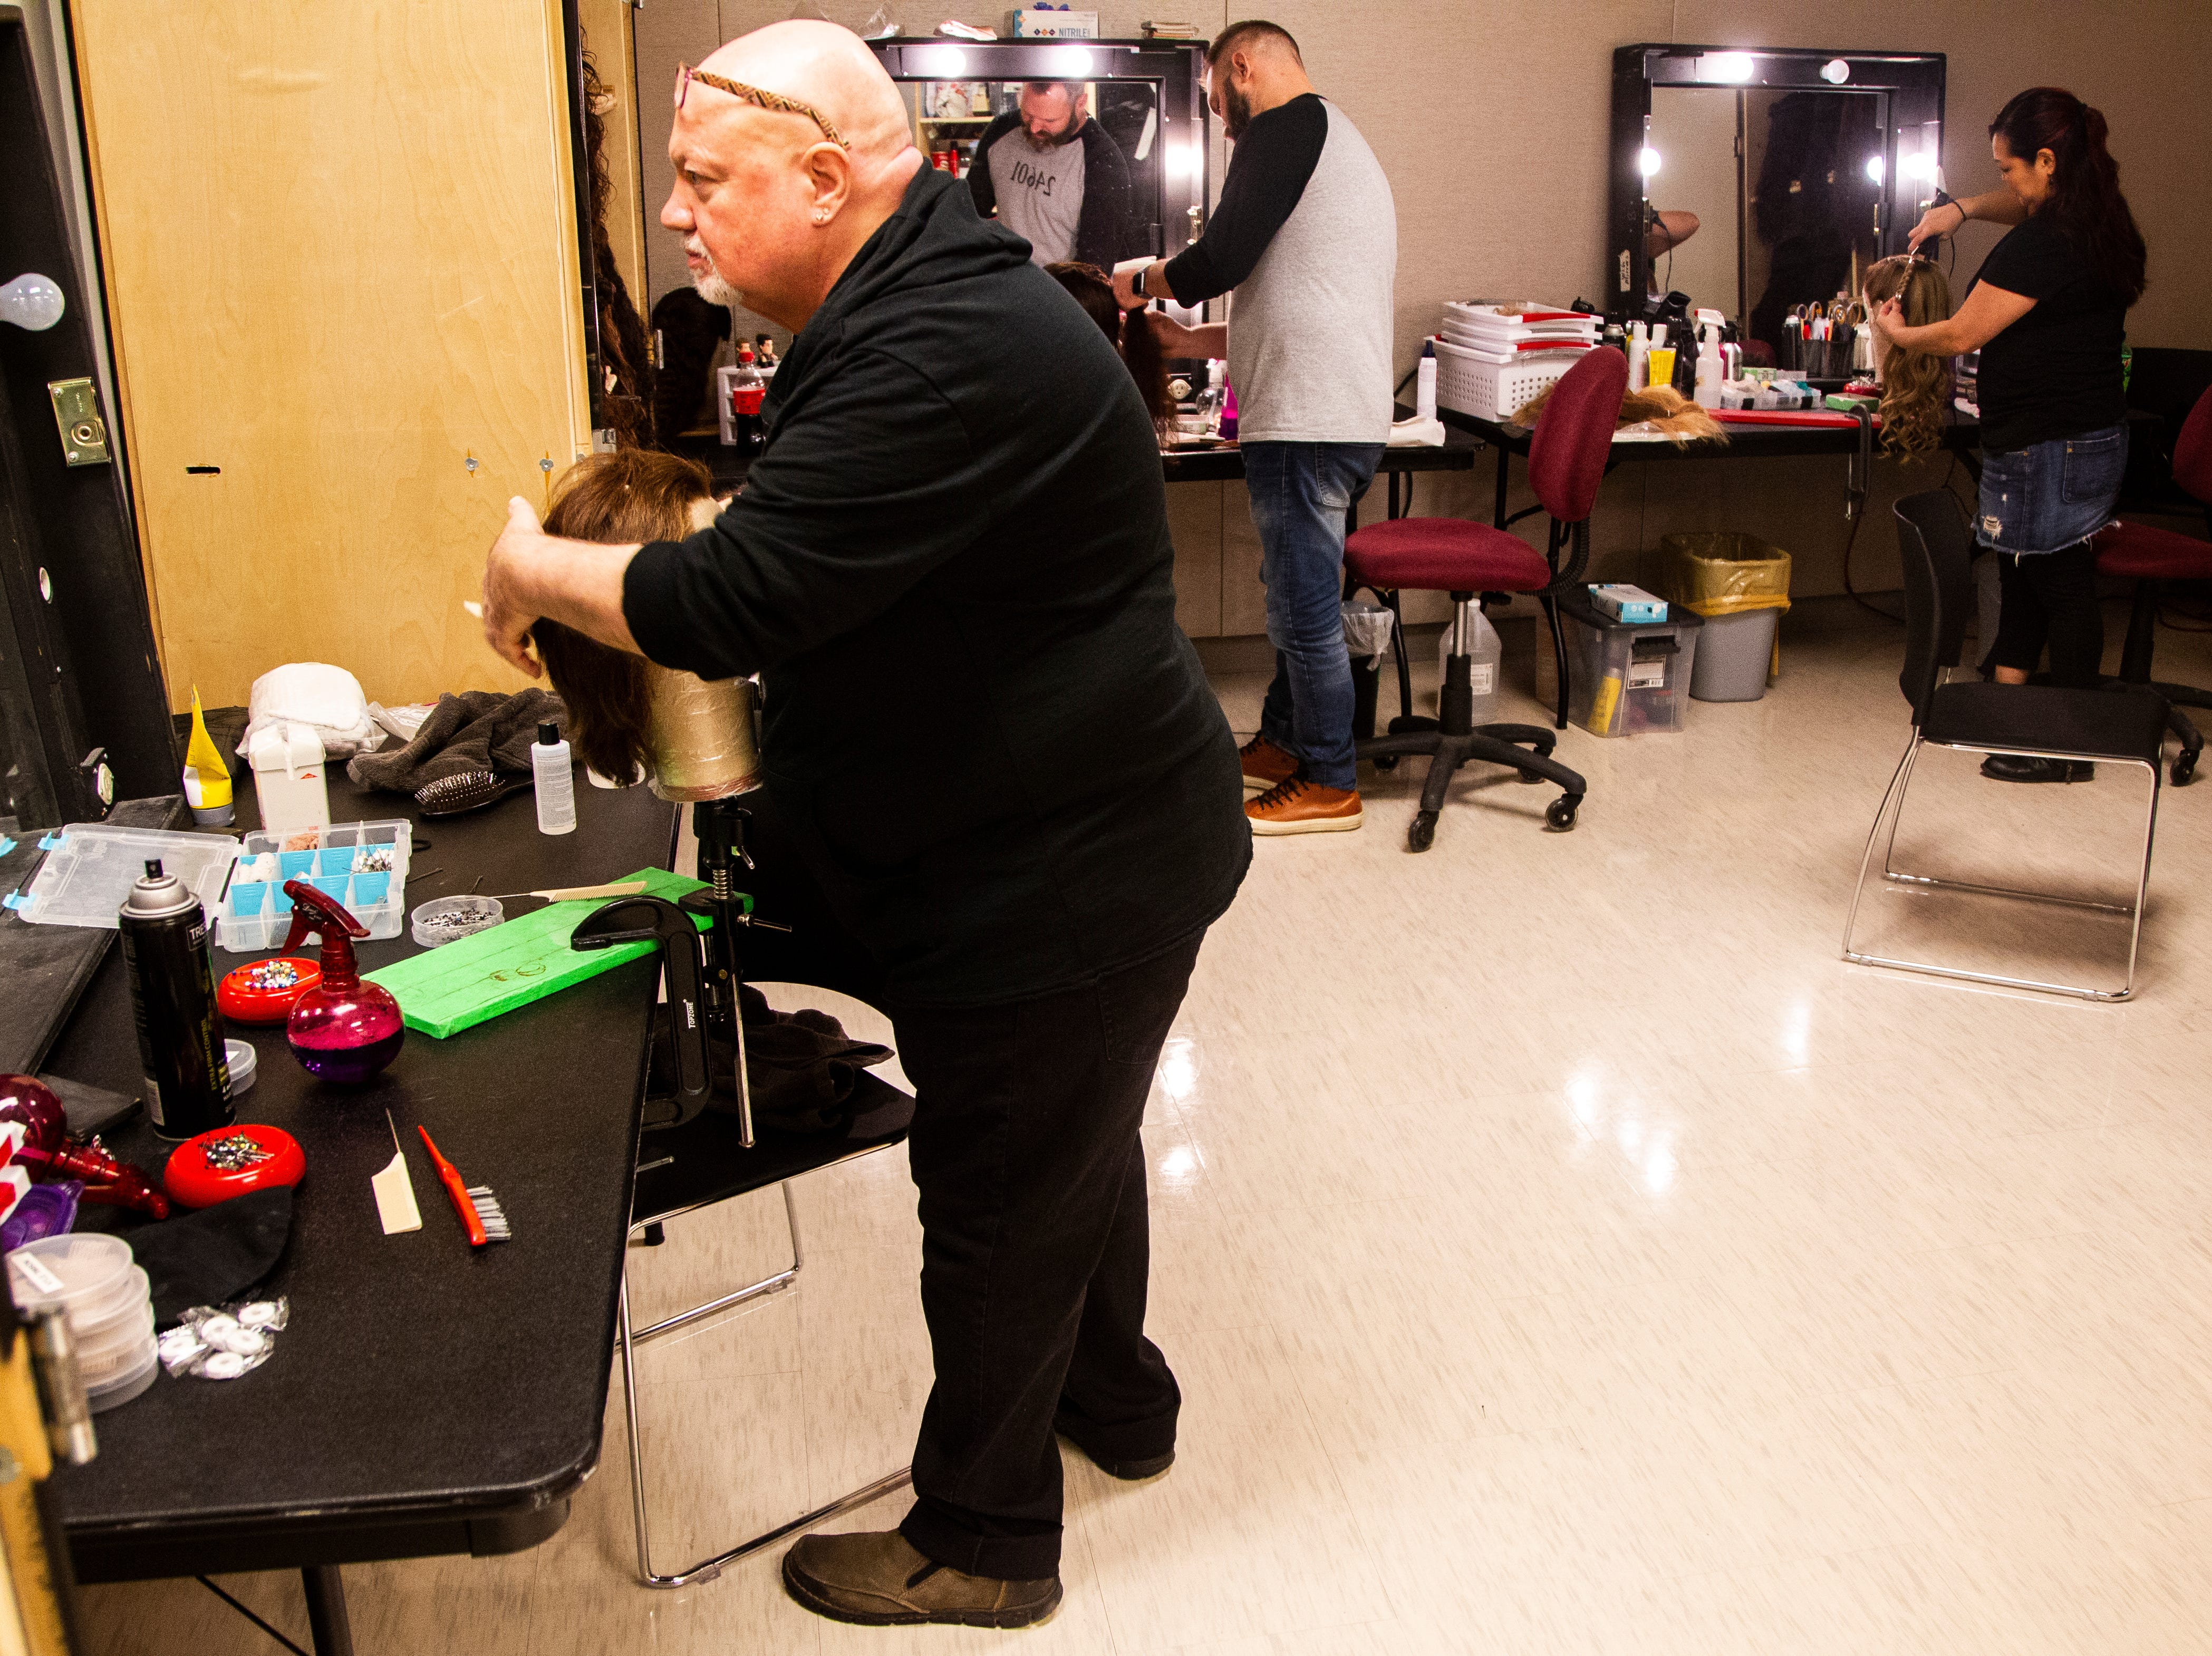 Members of the Les Misérables crew work on washing and styling wigs before its opening show on Tuesday, Dec. 4, 2018, at Hancher Auditorium on the University of Iowa campus in Iowa City.